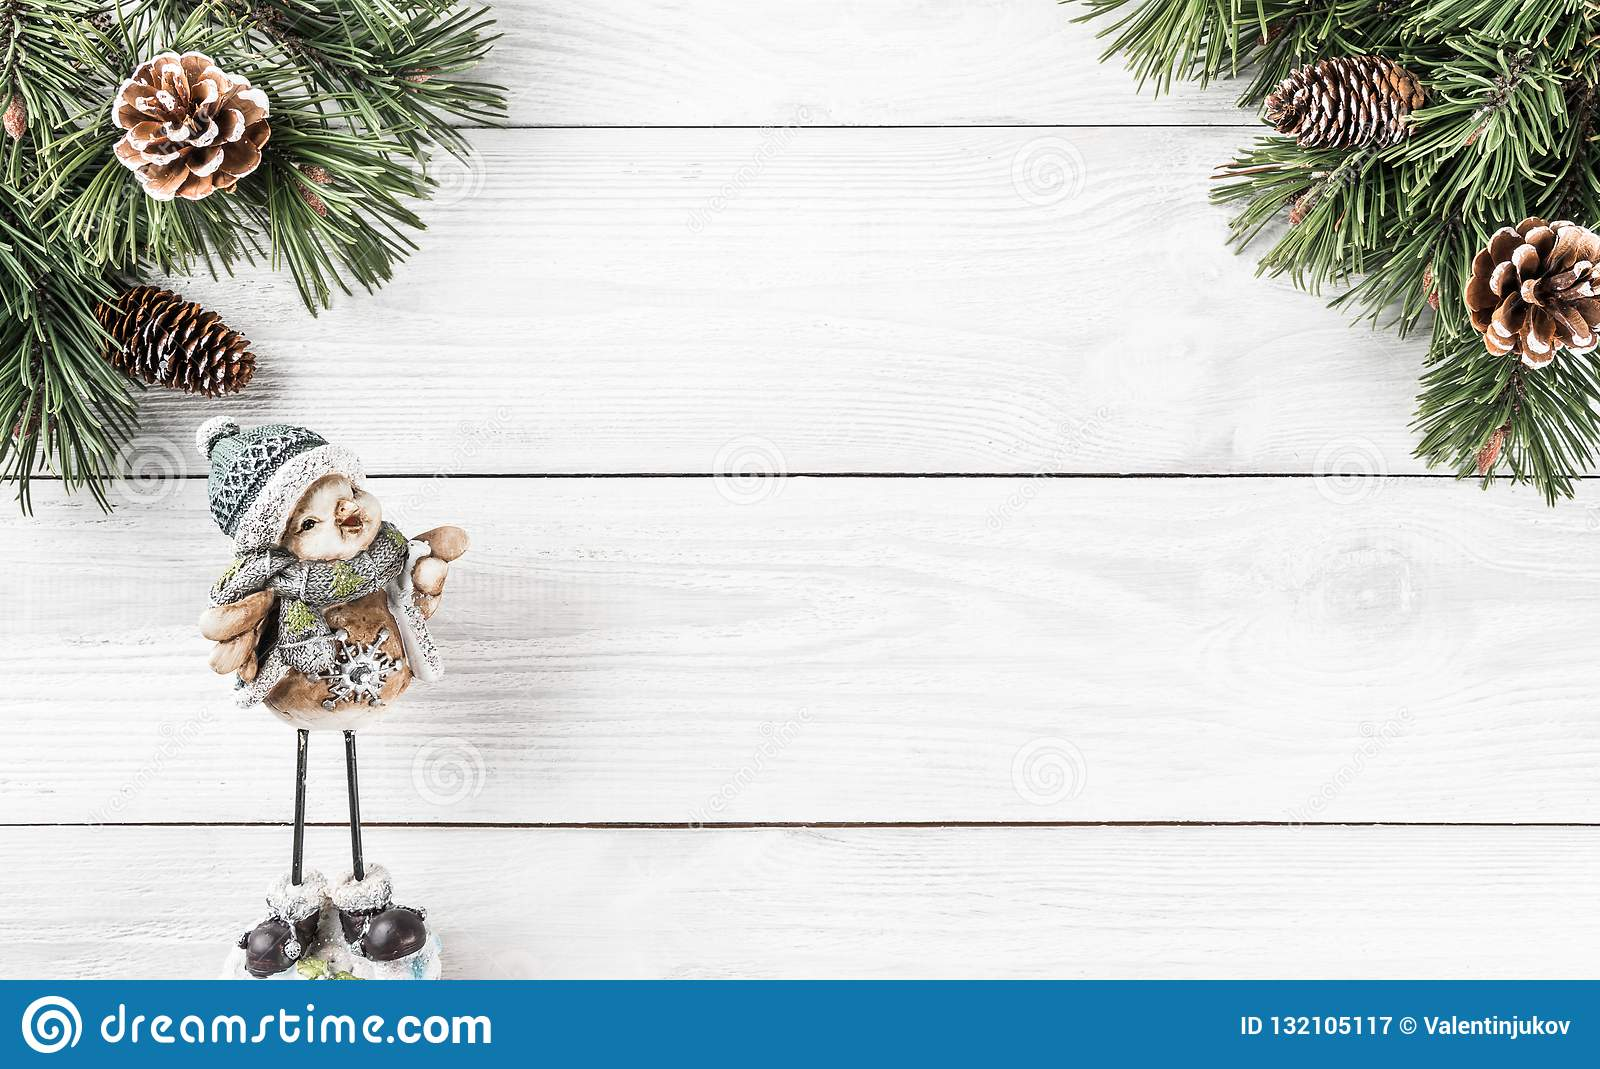 Christmas fir branches with pine cones and Christmas decoration on white wooden background. Xmas and Happy New Year theme.